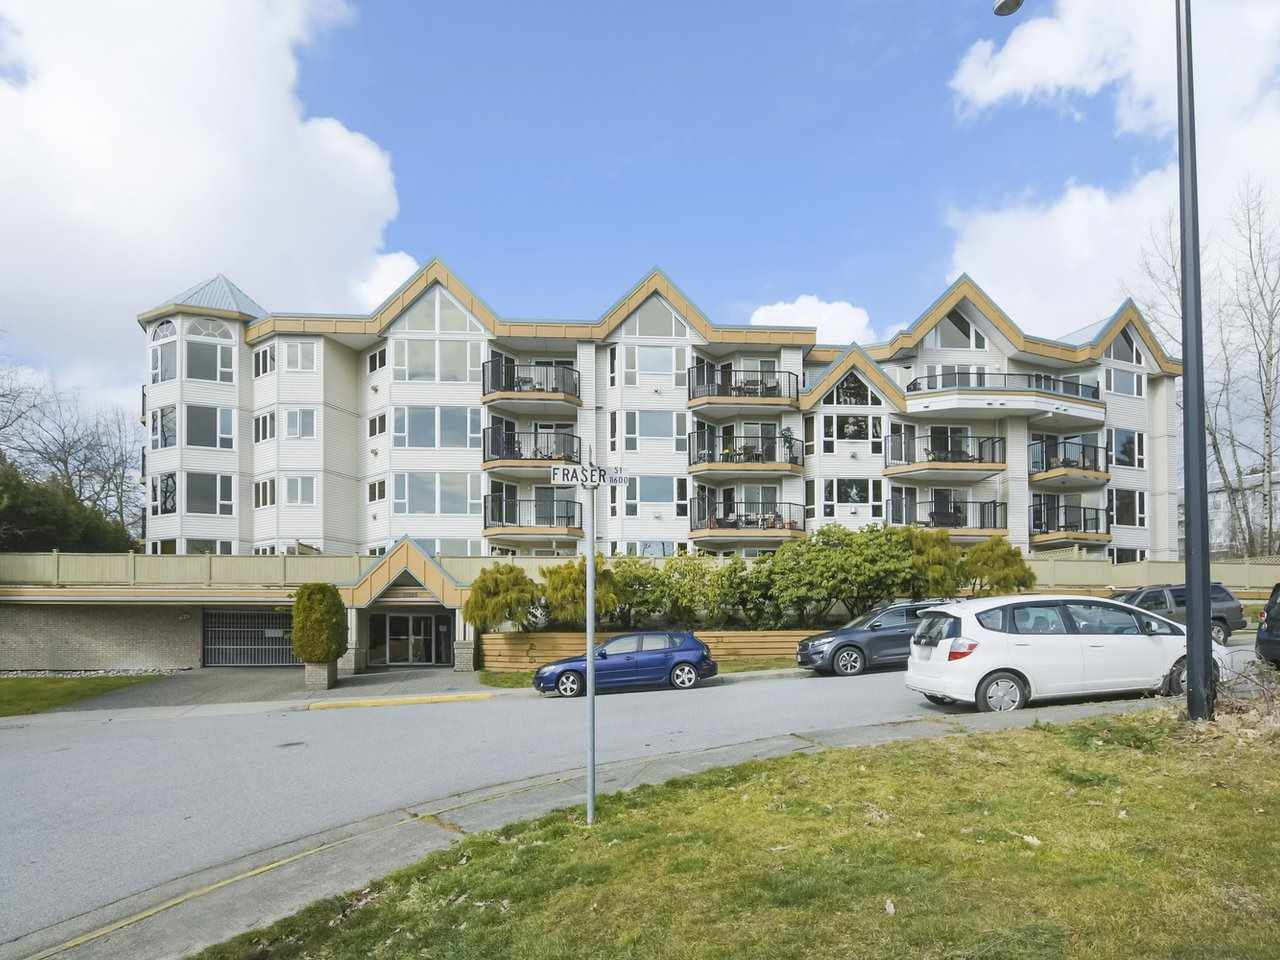 Main Photo: 204 11595 FRASER STREET in Maple Ridge: East Central Condo for sale : MLS®# R2348183